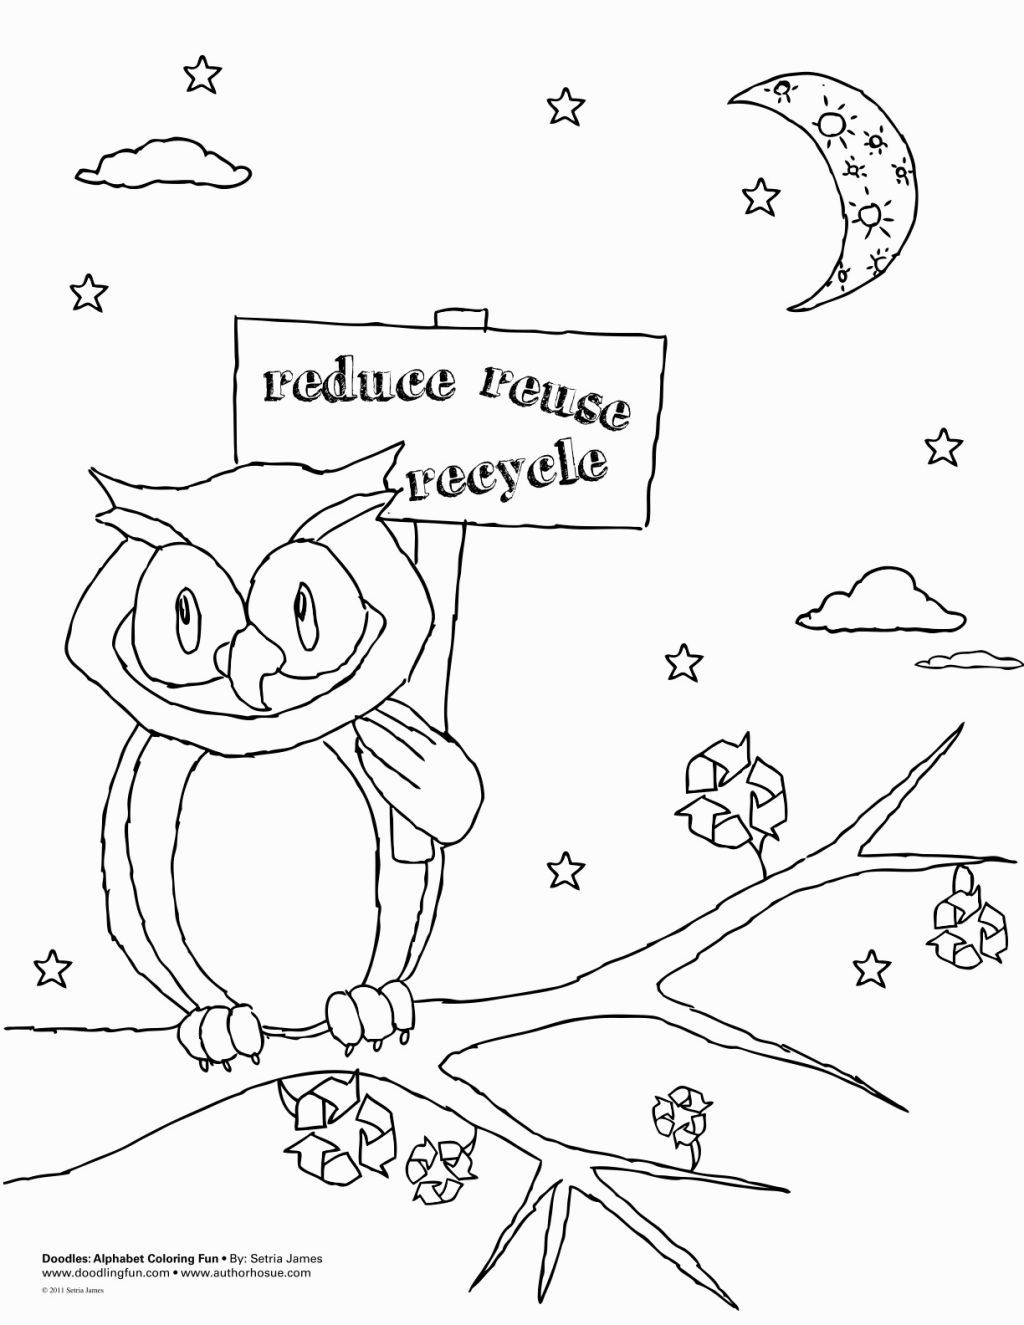 Recycling Coloring Page   Coloring Pages   Pinterest